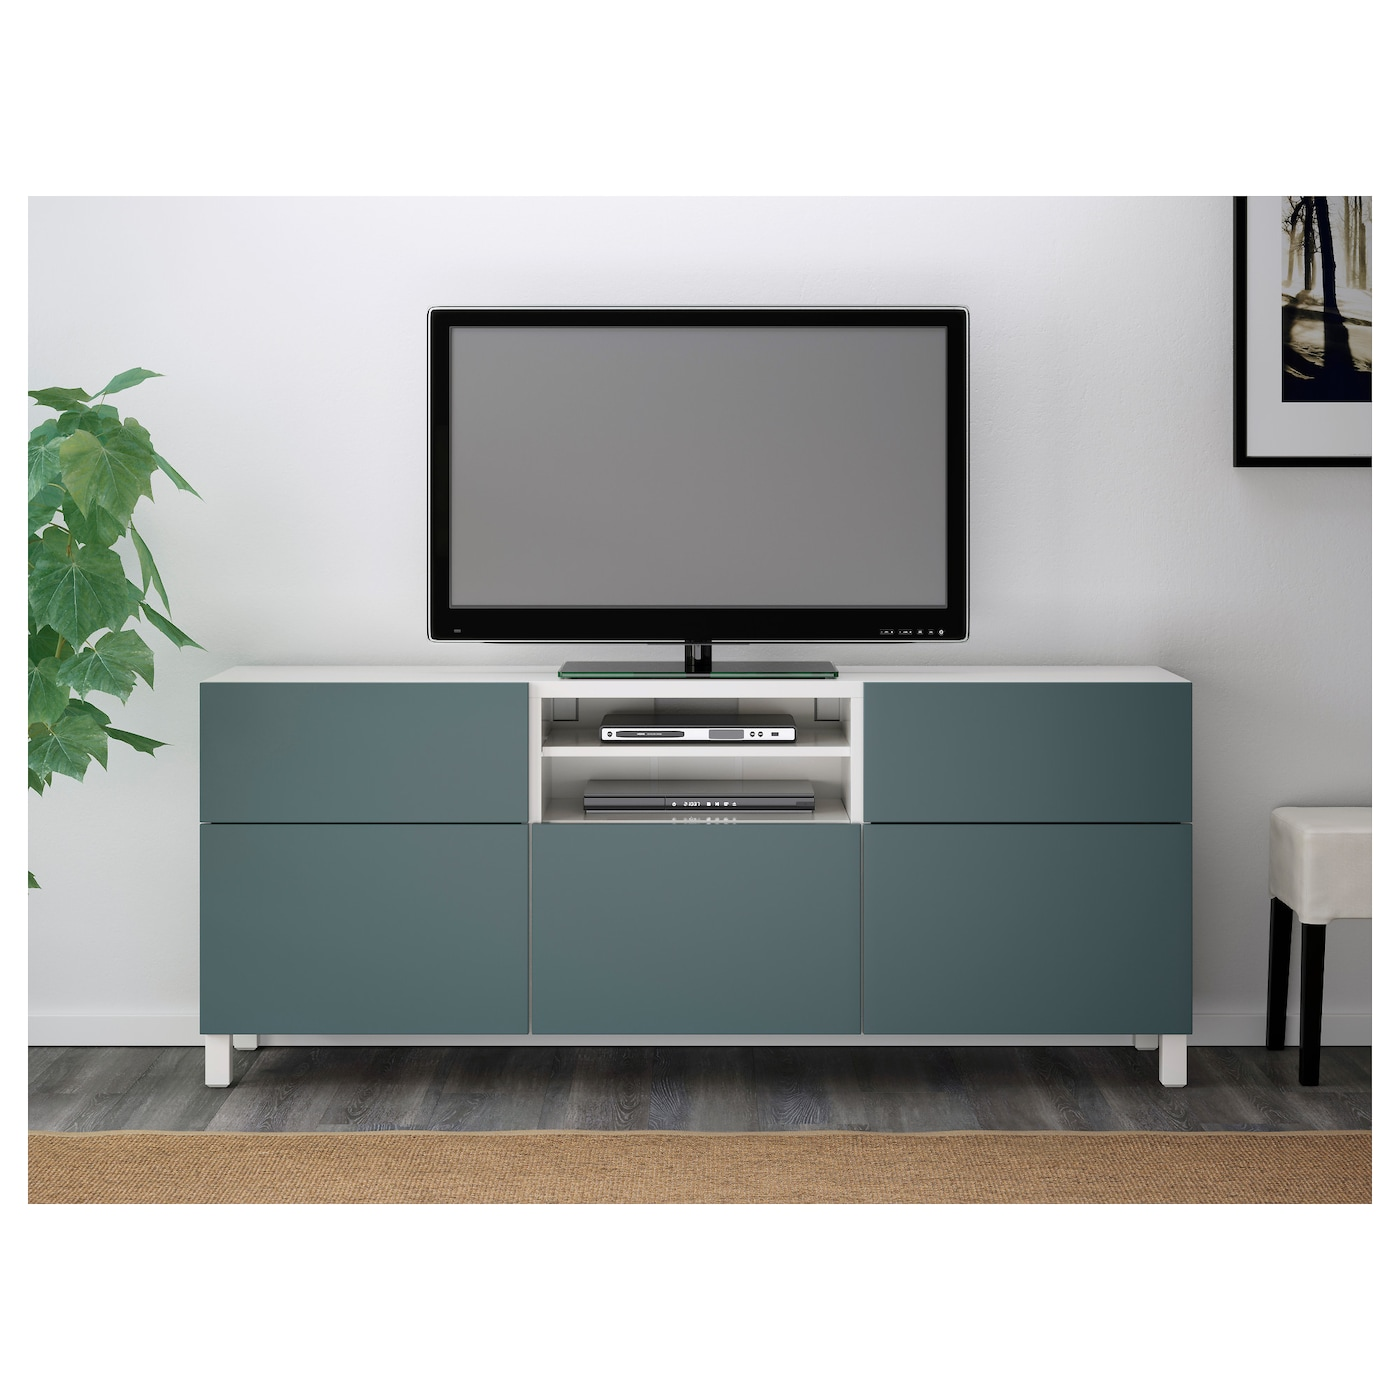 best tv bench white valviken grey turquoise 180x40x74 cm. Black Bedroom Furniture Sets. Home Design Ideas